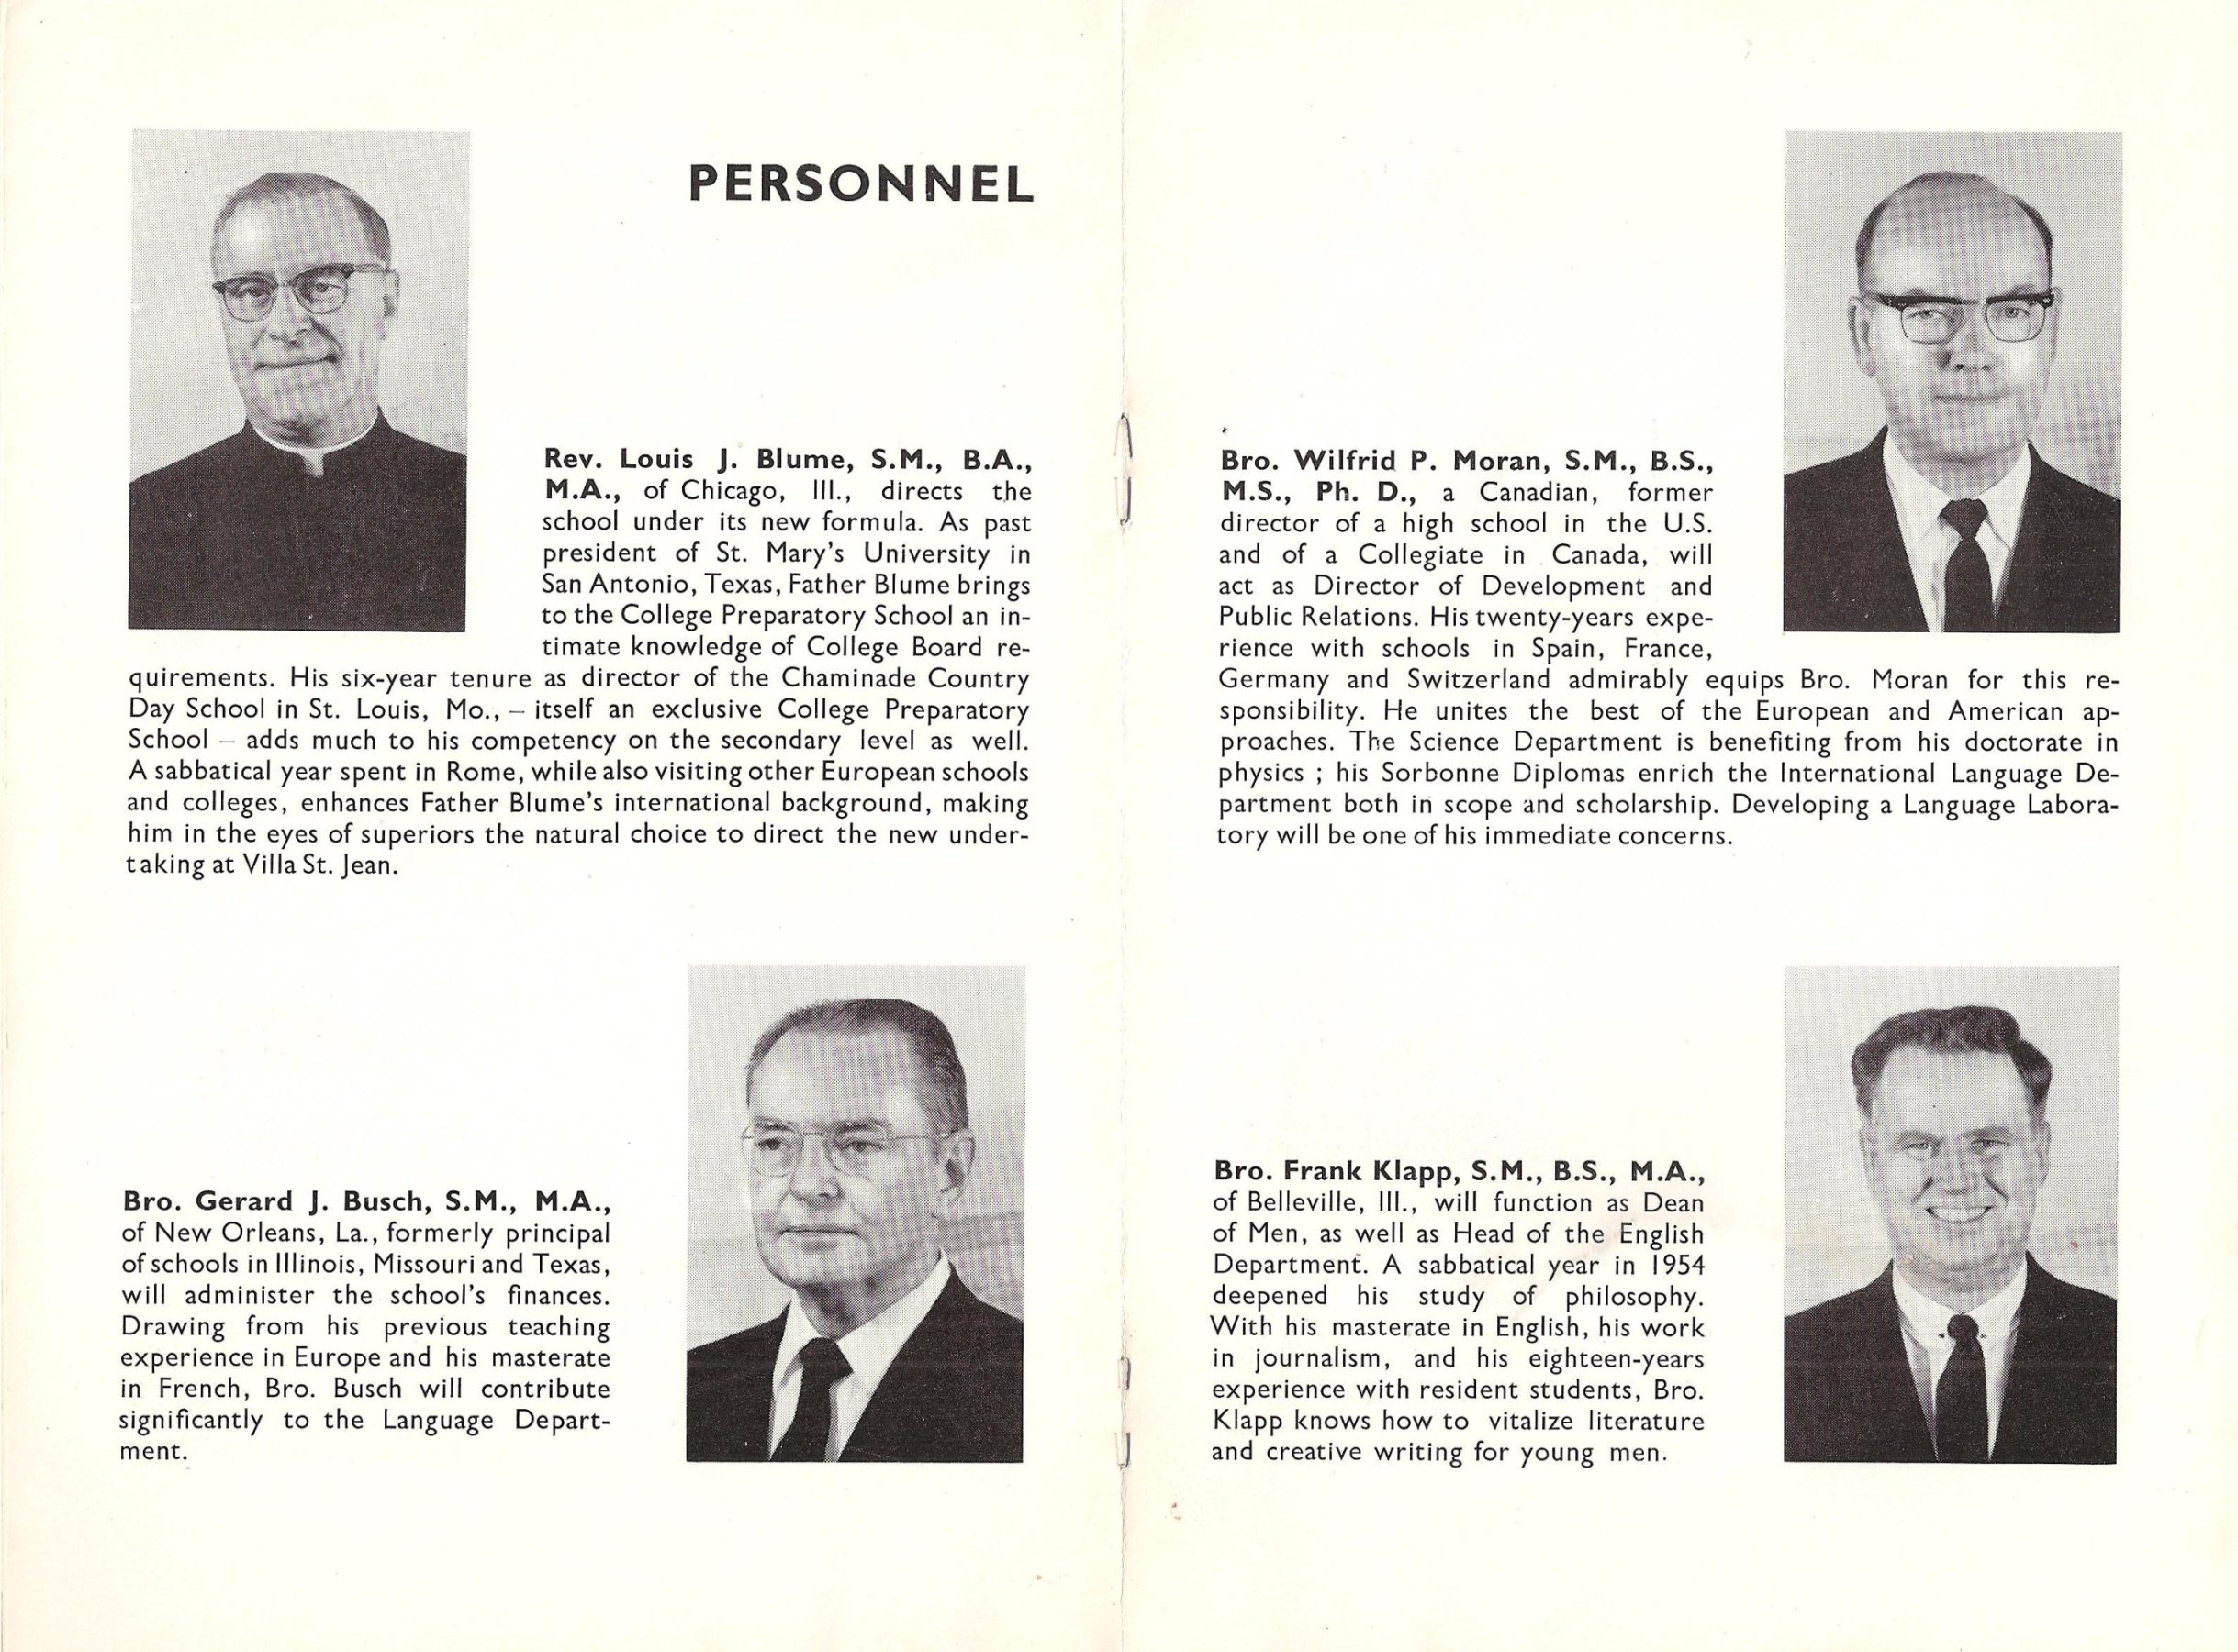 Image: Pages 5 and 6 of Villa Saint Jean November 1962 NEWSLETTER